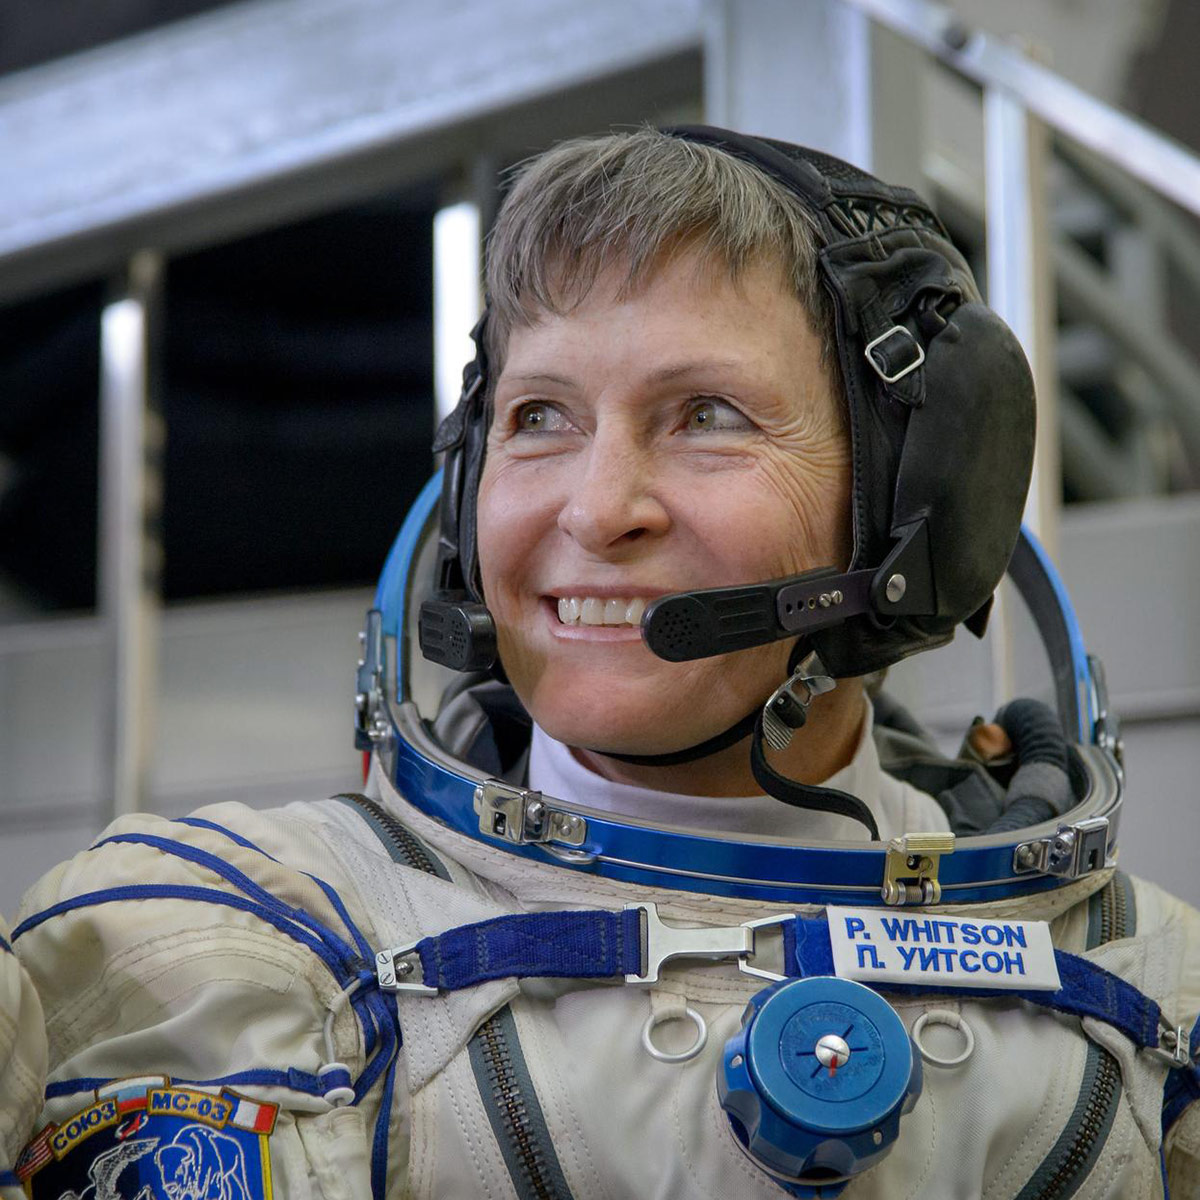 peggy whitson gagarin cosmonaut training